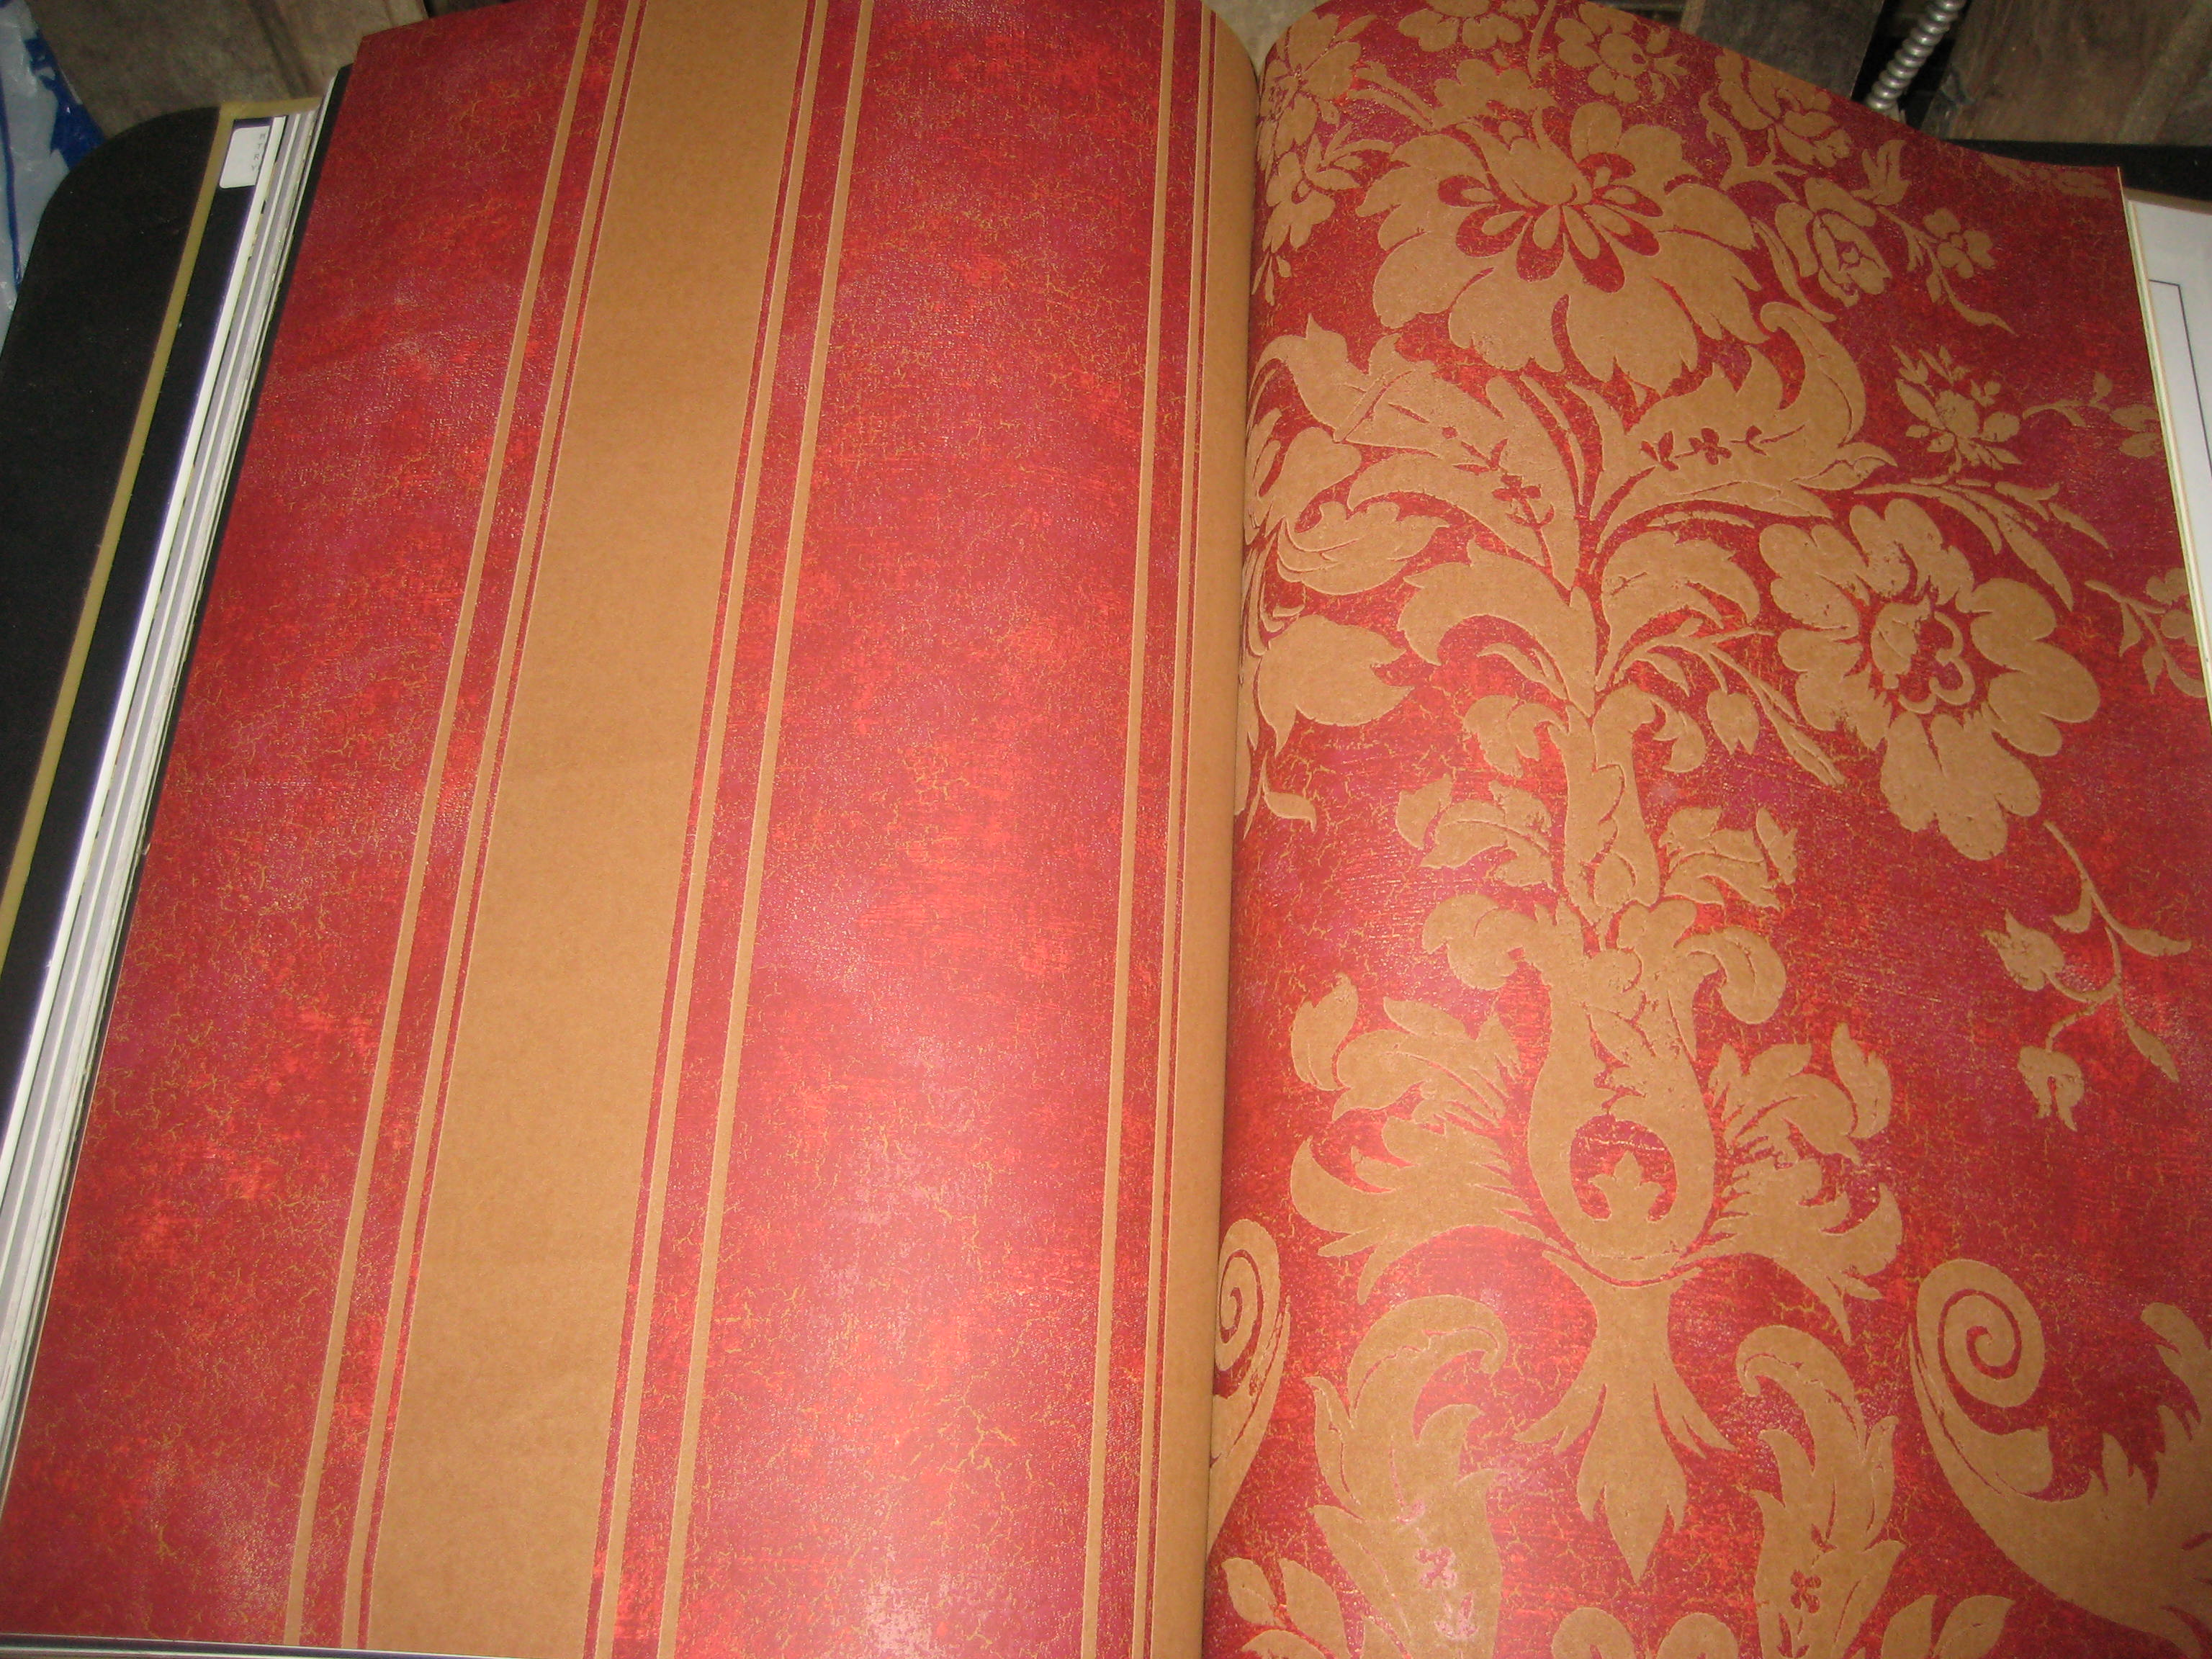 Middlebury Historic Home Second Edition Wallpaper Sample Book 3072x2304